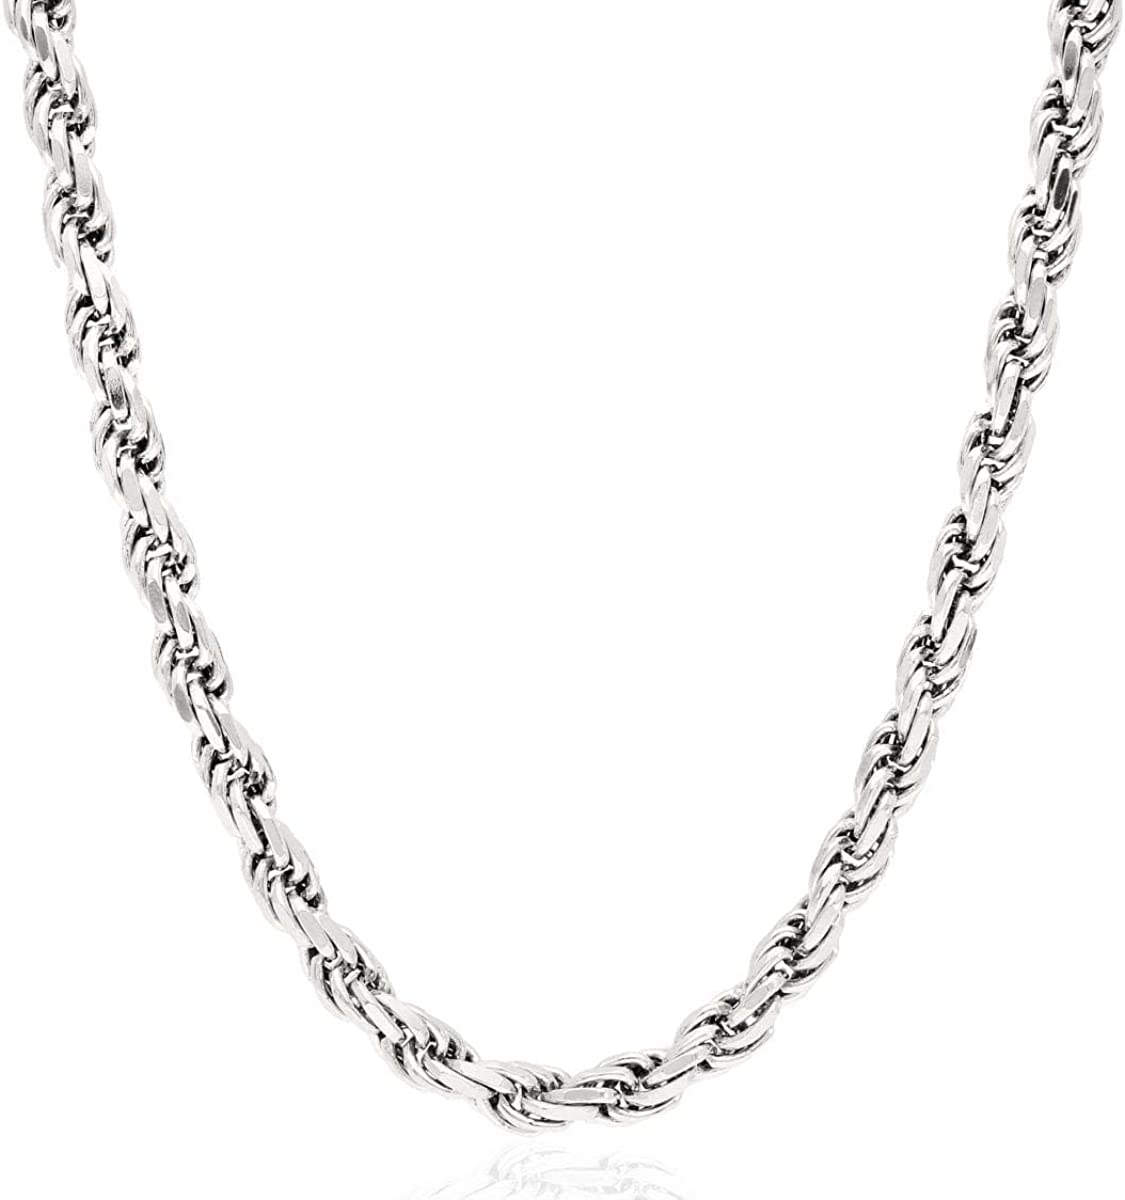 925 Sterling Silver Diamond Cut 6mm Rope Chain Necklace 24 26 28 28